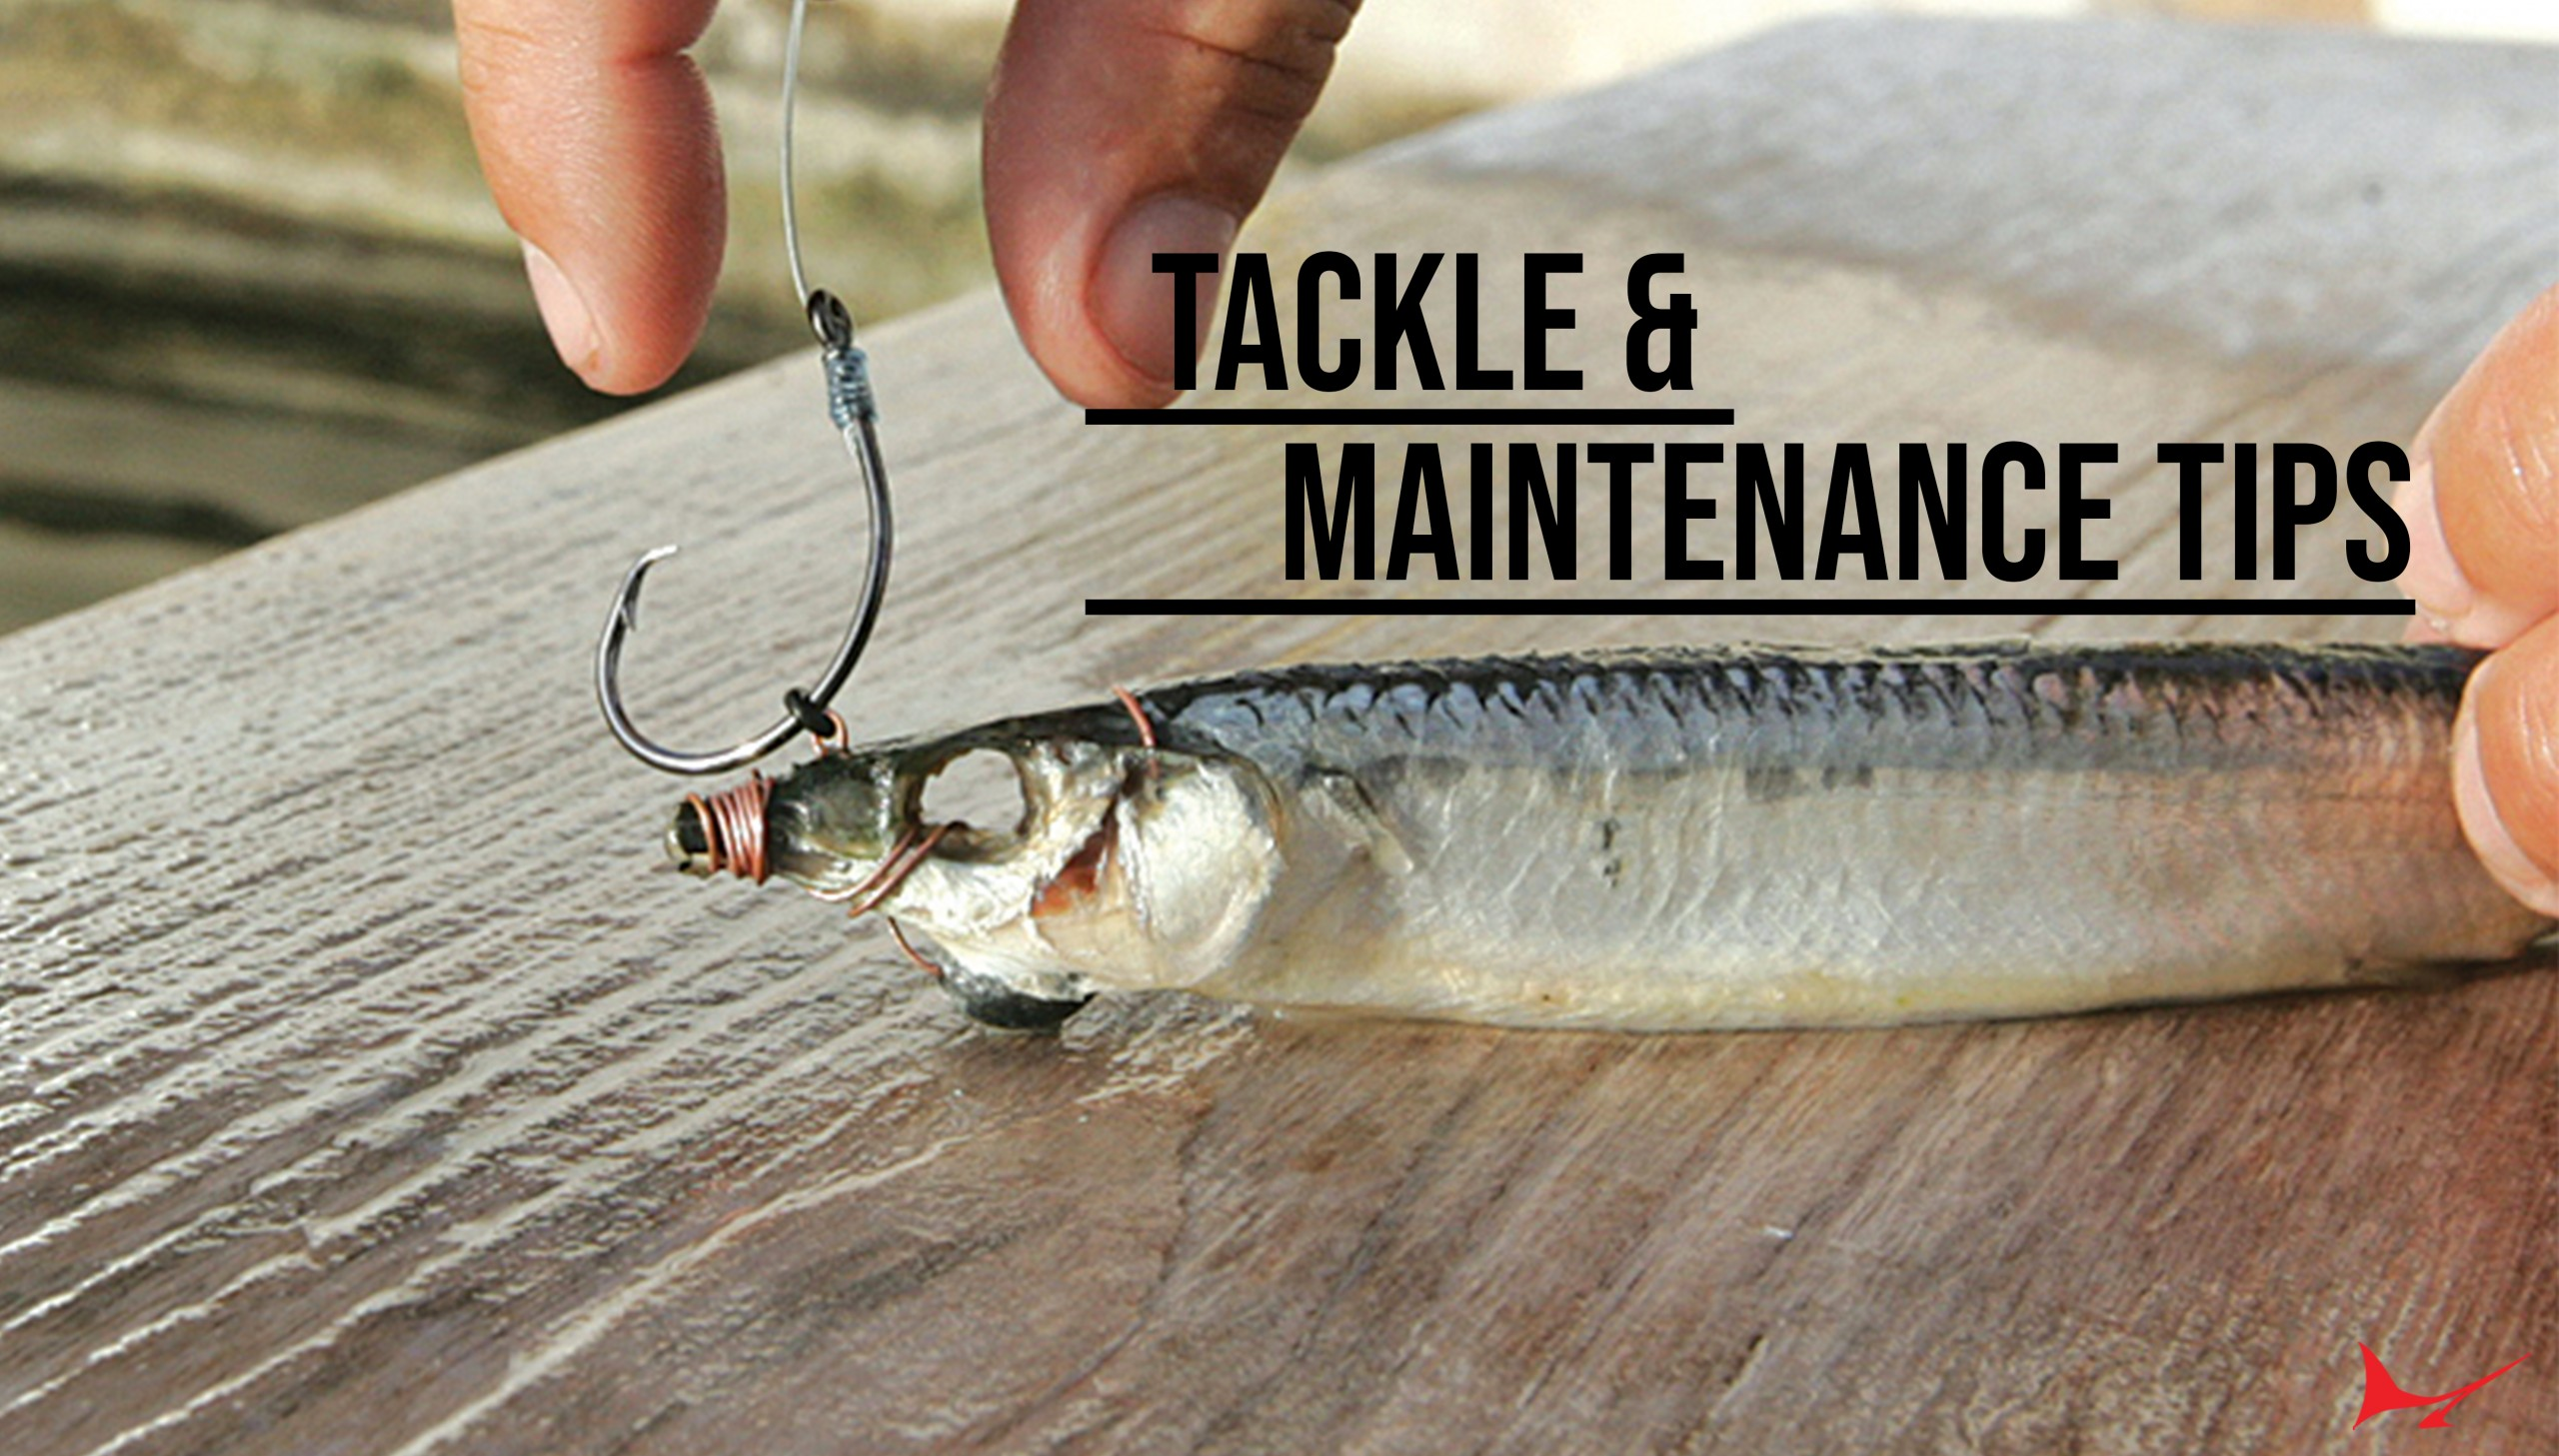 Tackle & Maintenance Tips